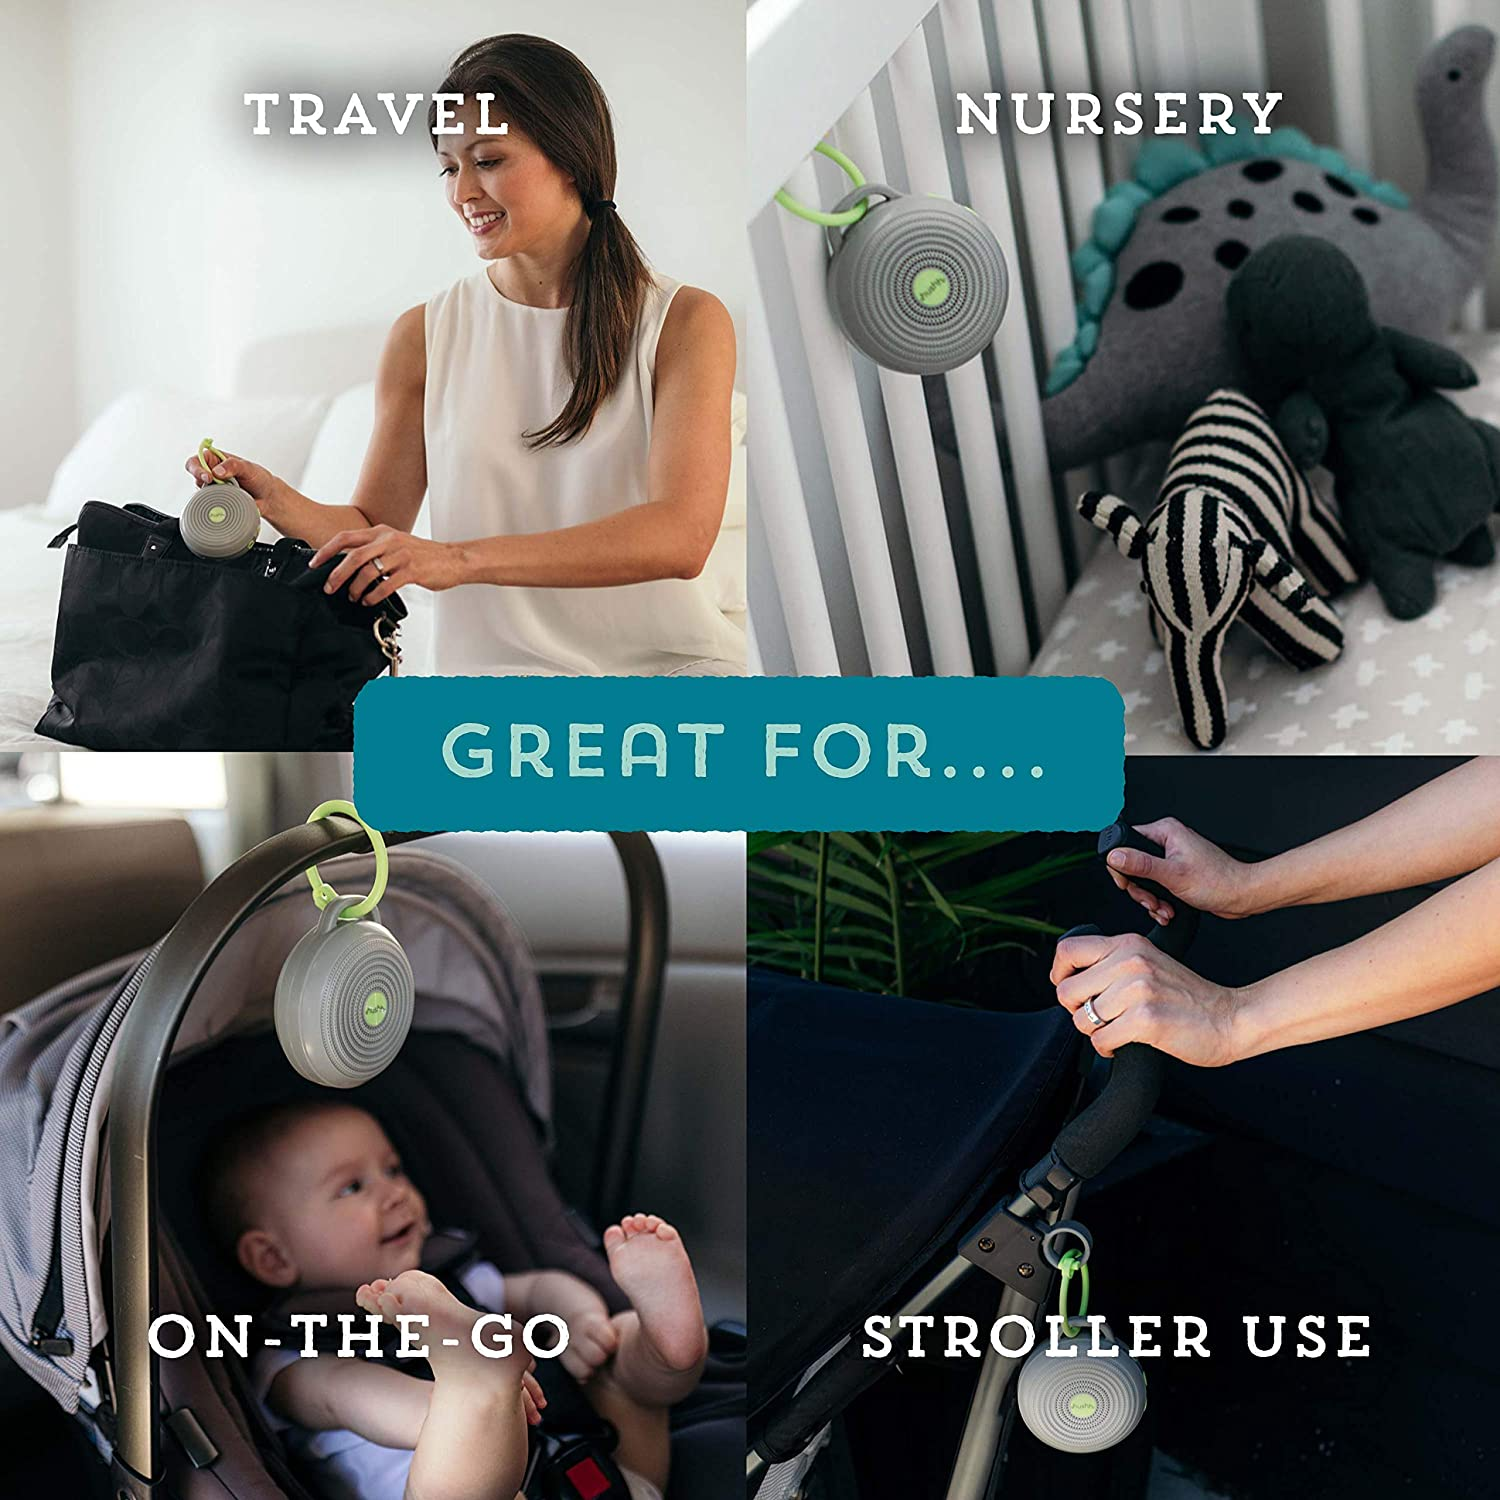 Uses for the yogasleep hushh: travel, nursery, on-the-go, and stroller use